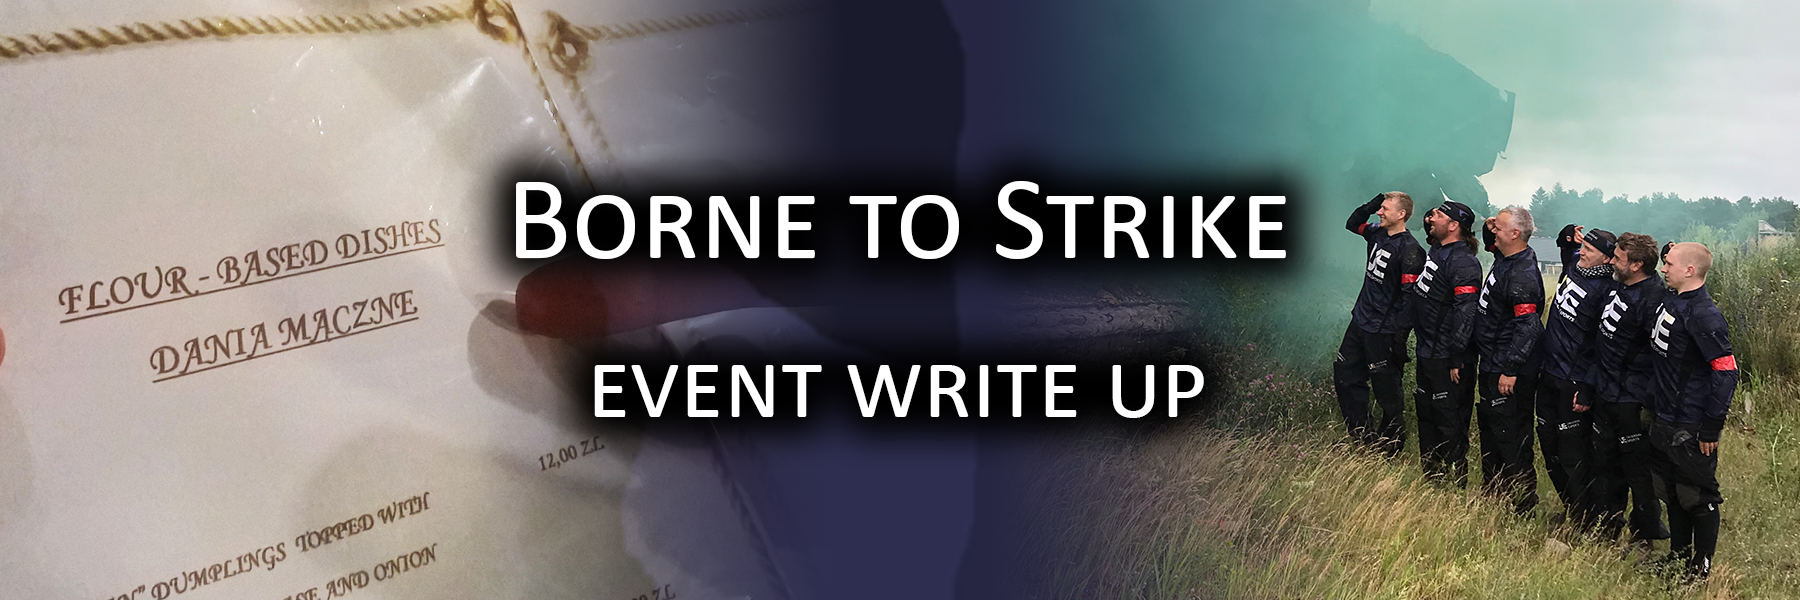 Borne To Strike Event Writeup